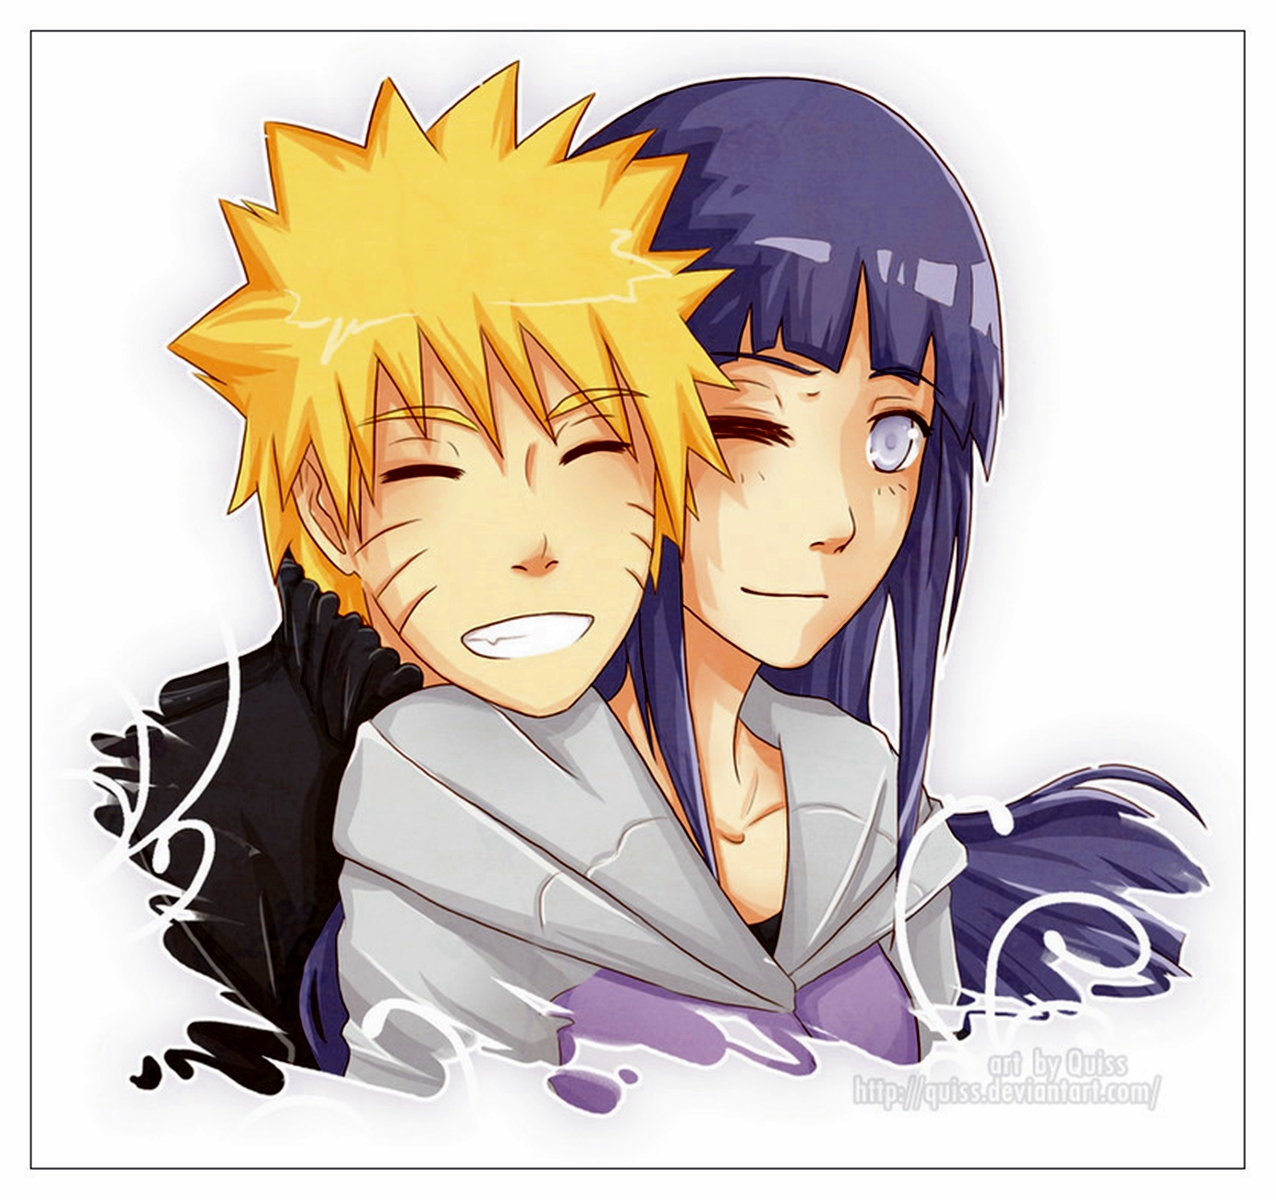 Free Download Naruto And Hinata Wallpaper Forwallpapercom 1276x1200 For Your Desktop Mobile Tablet Explore 72 Naruto Hinata Wallpaper Hinata Hyuga Wallpaper Naruto Hd Wallpapers For Desktop Naruto The Last Movie Wallpaper